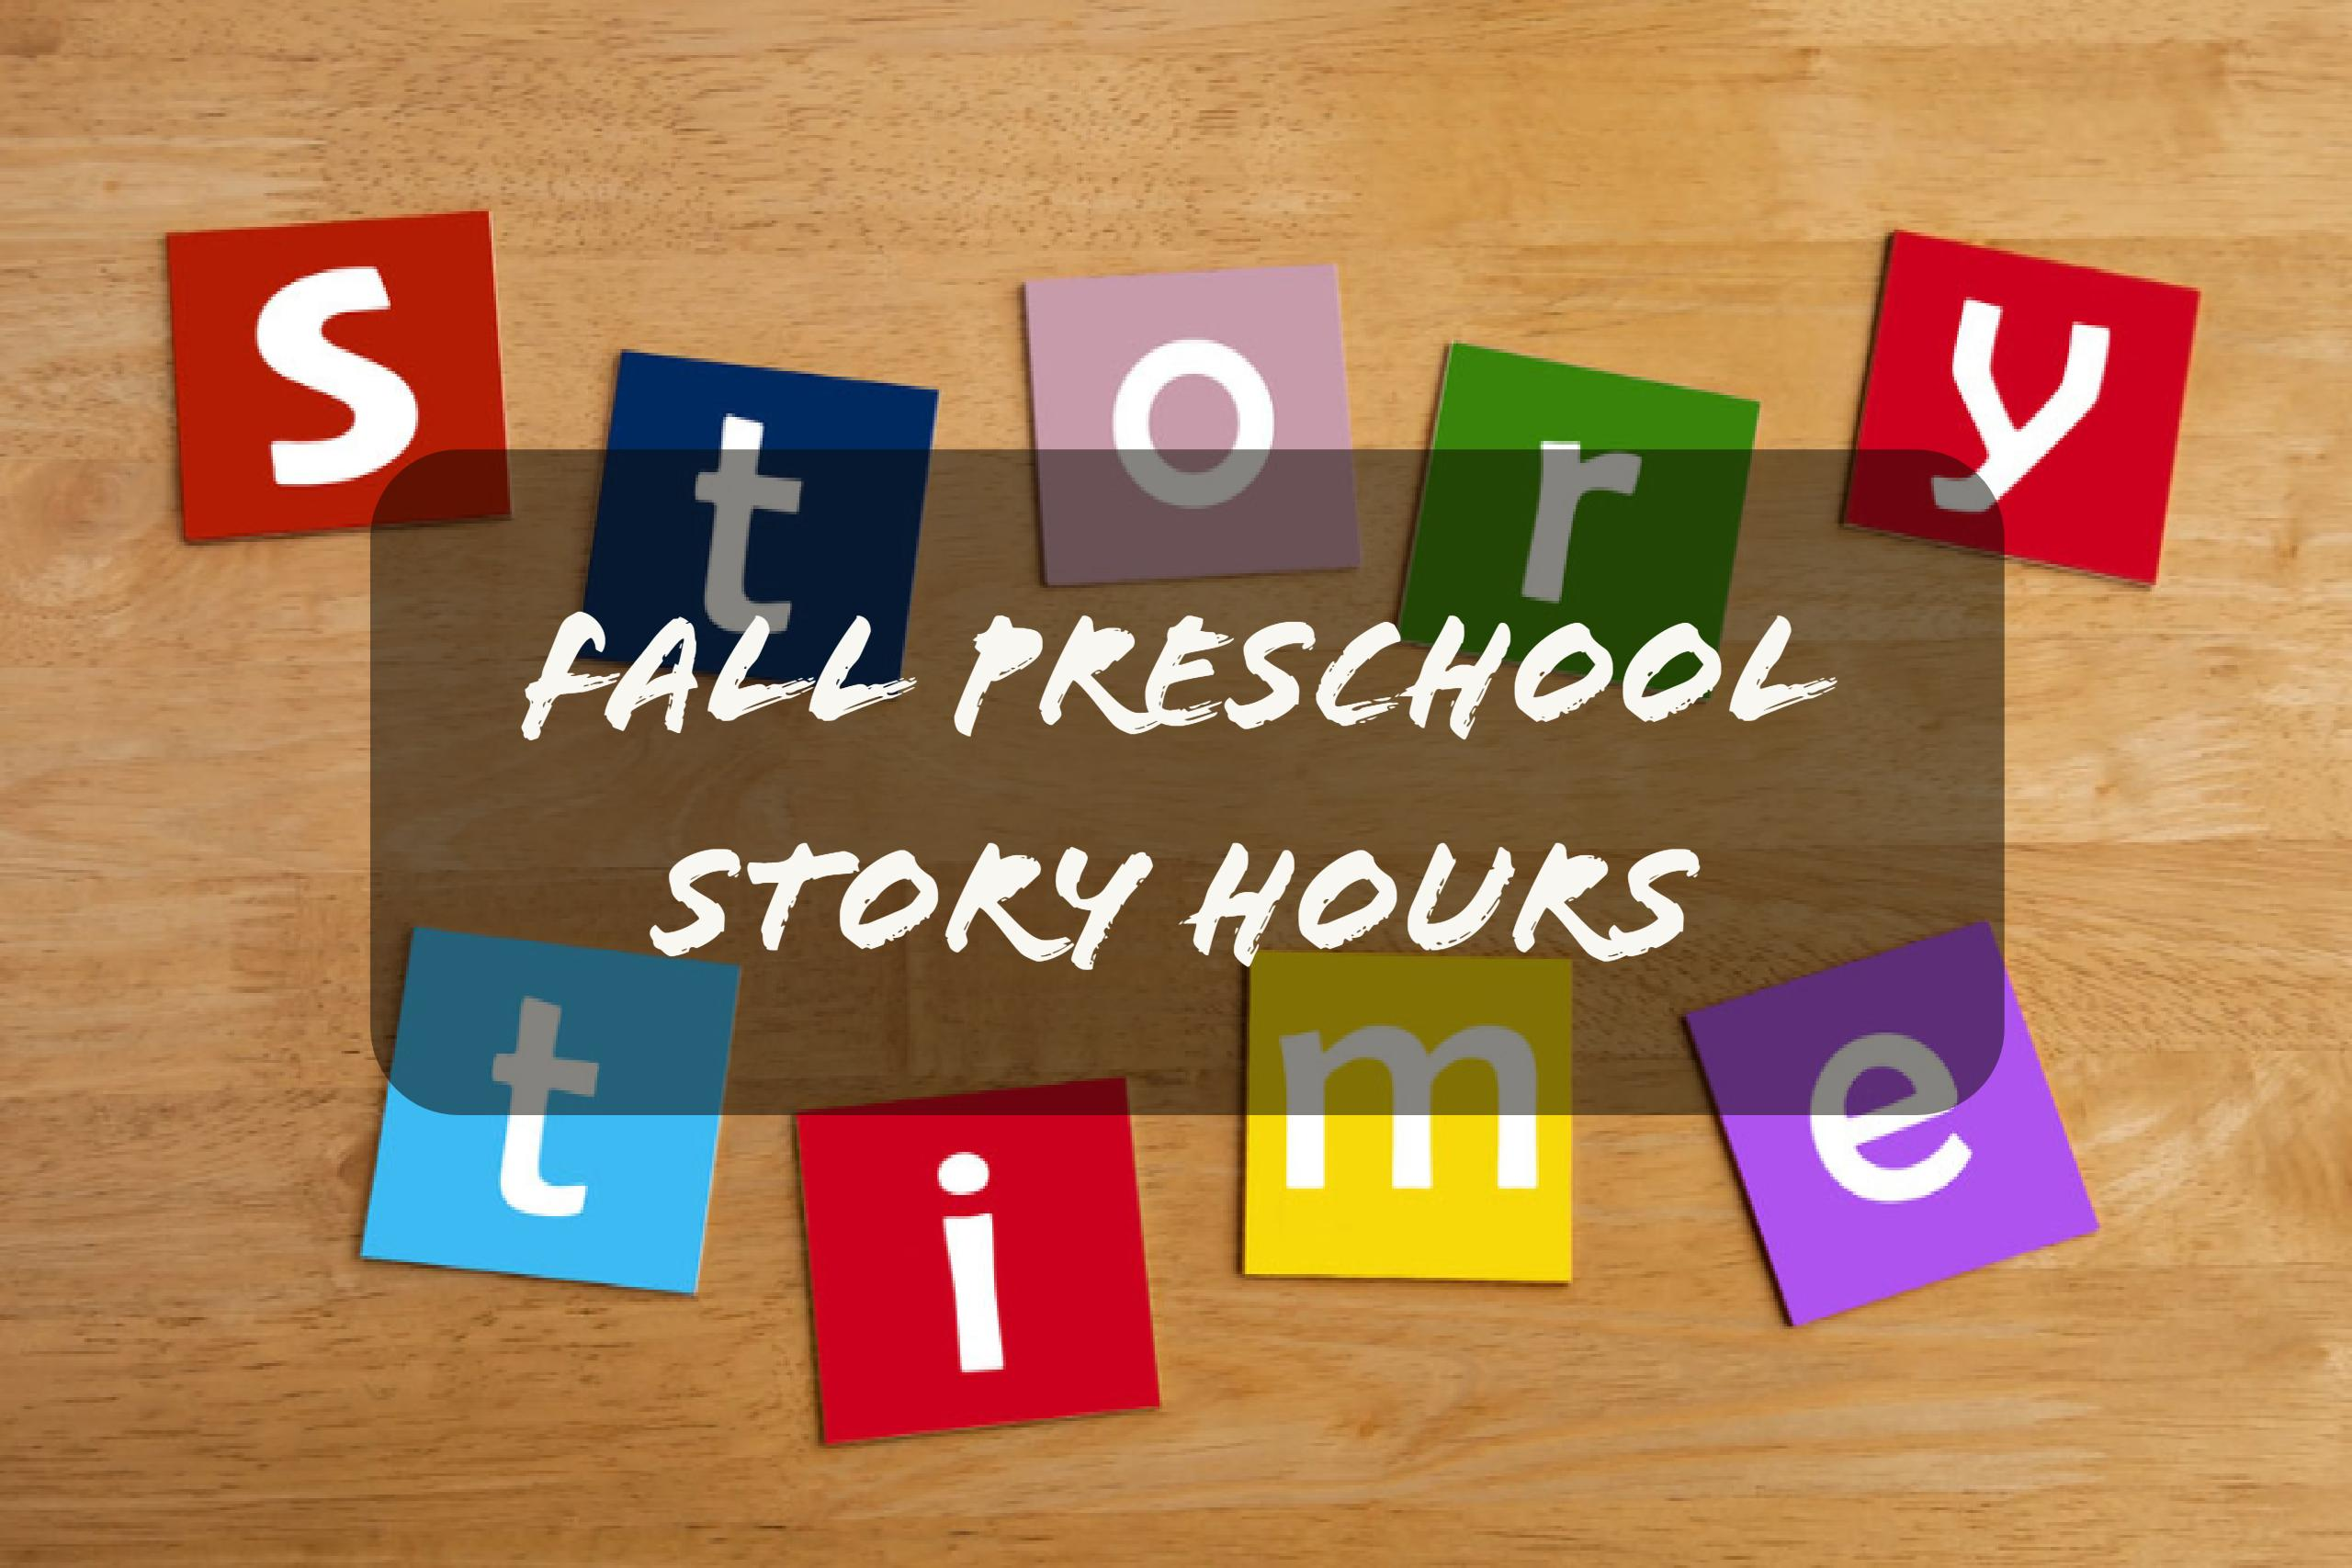 Fall Preschool Story Hours